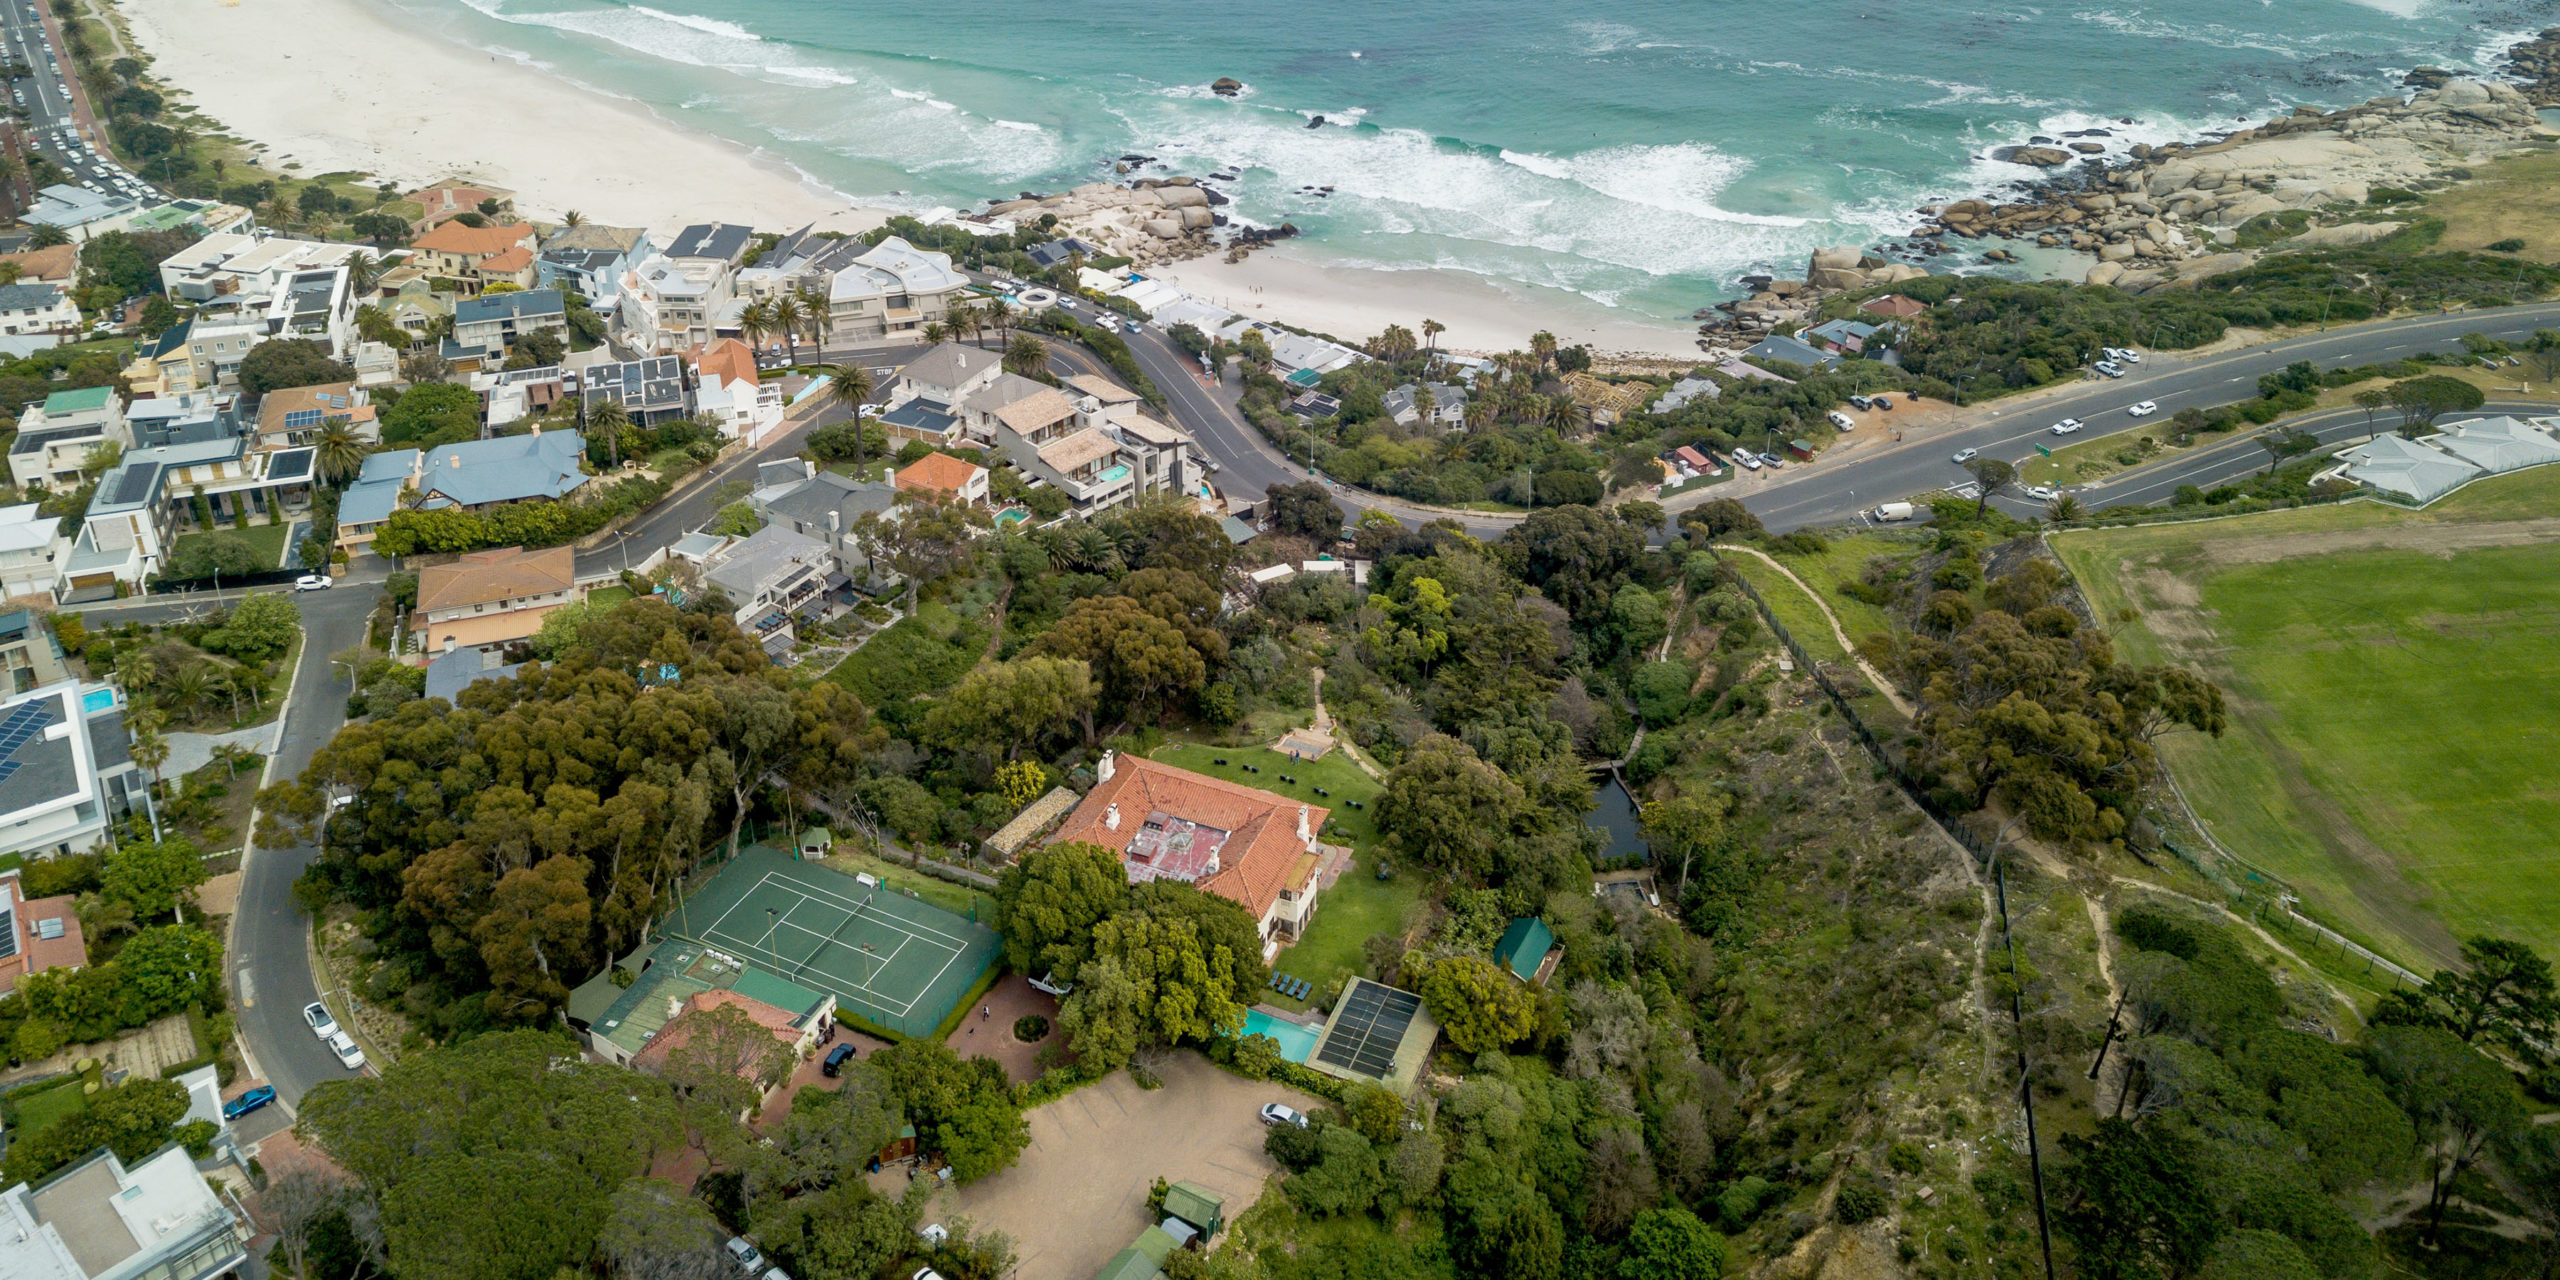 Camps Bay Retreat Aerial View